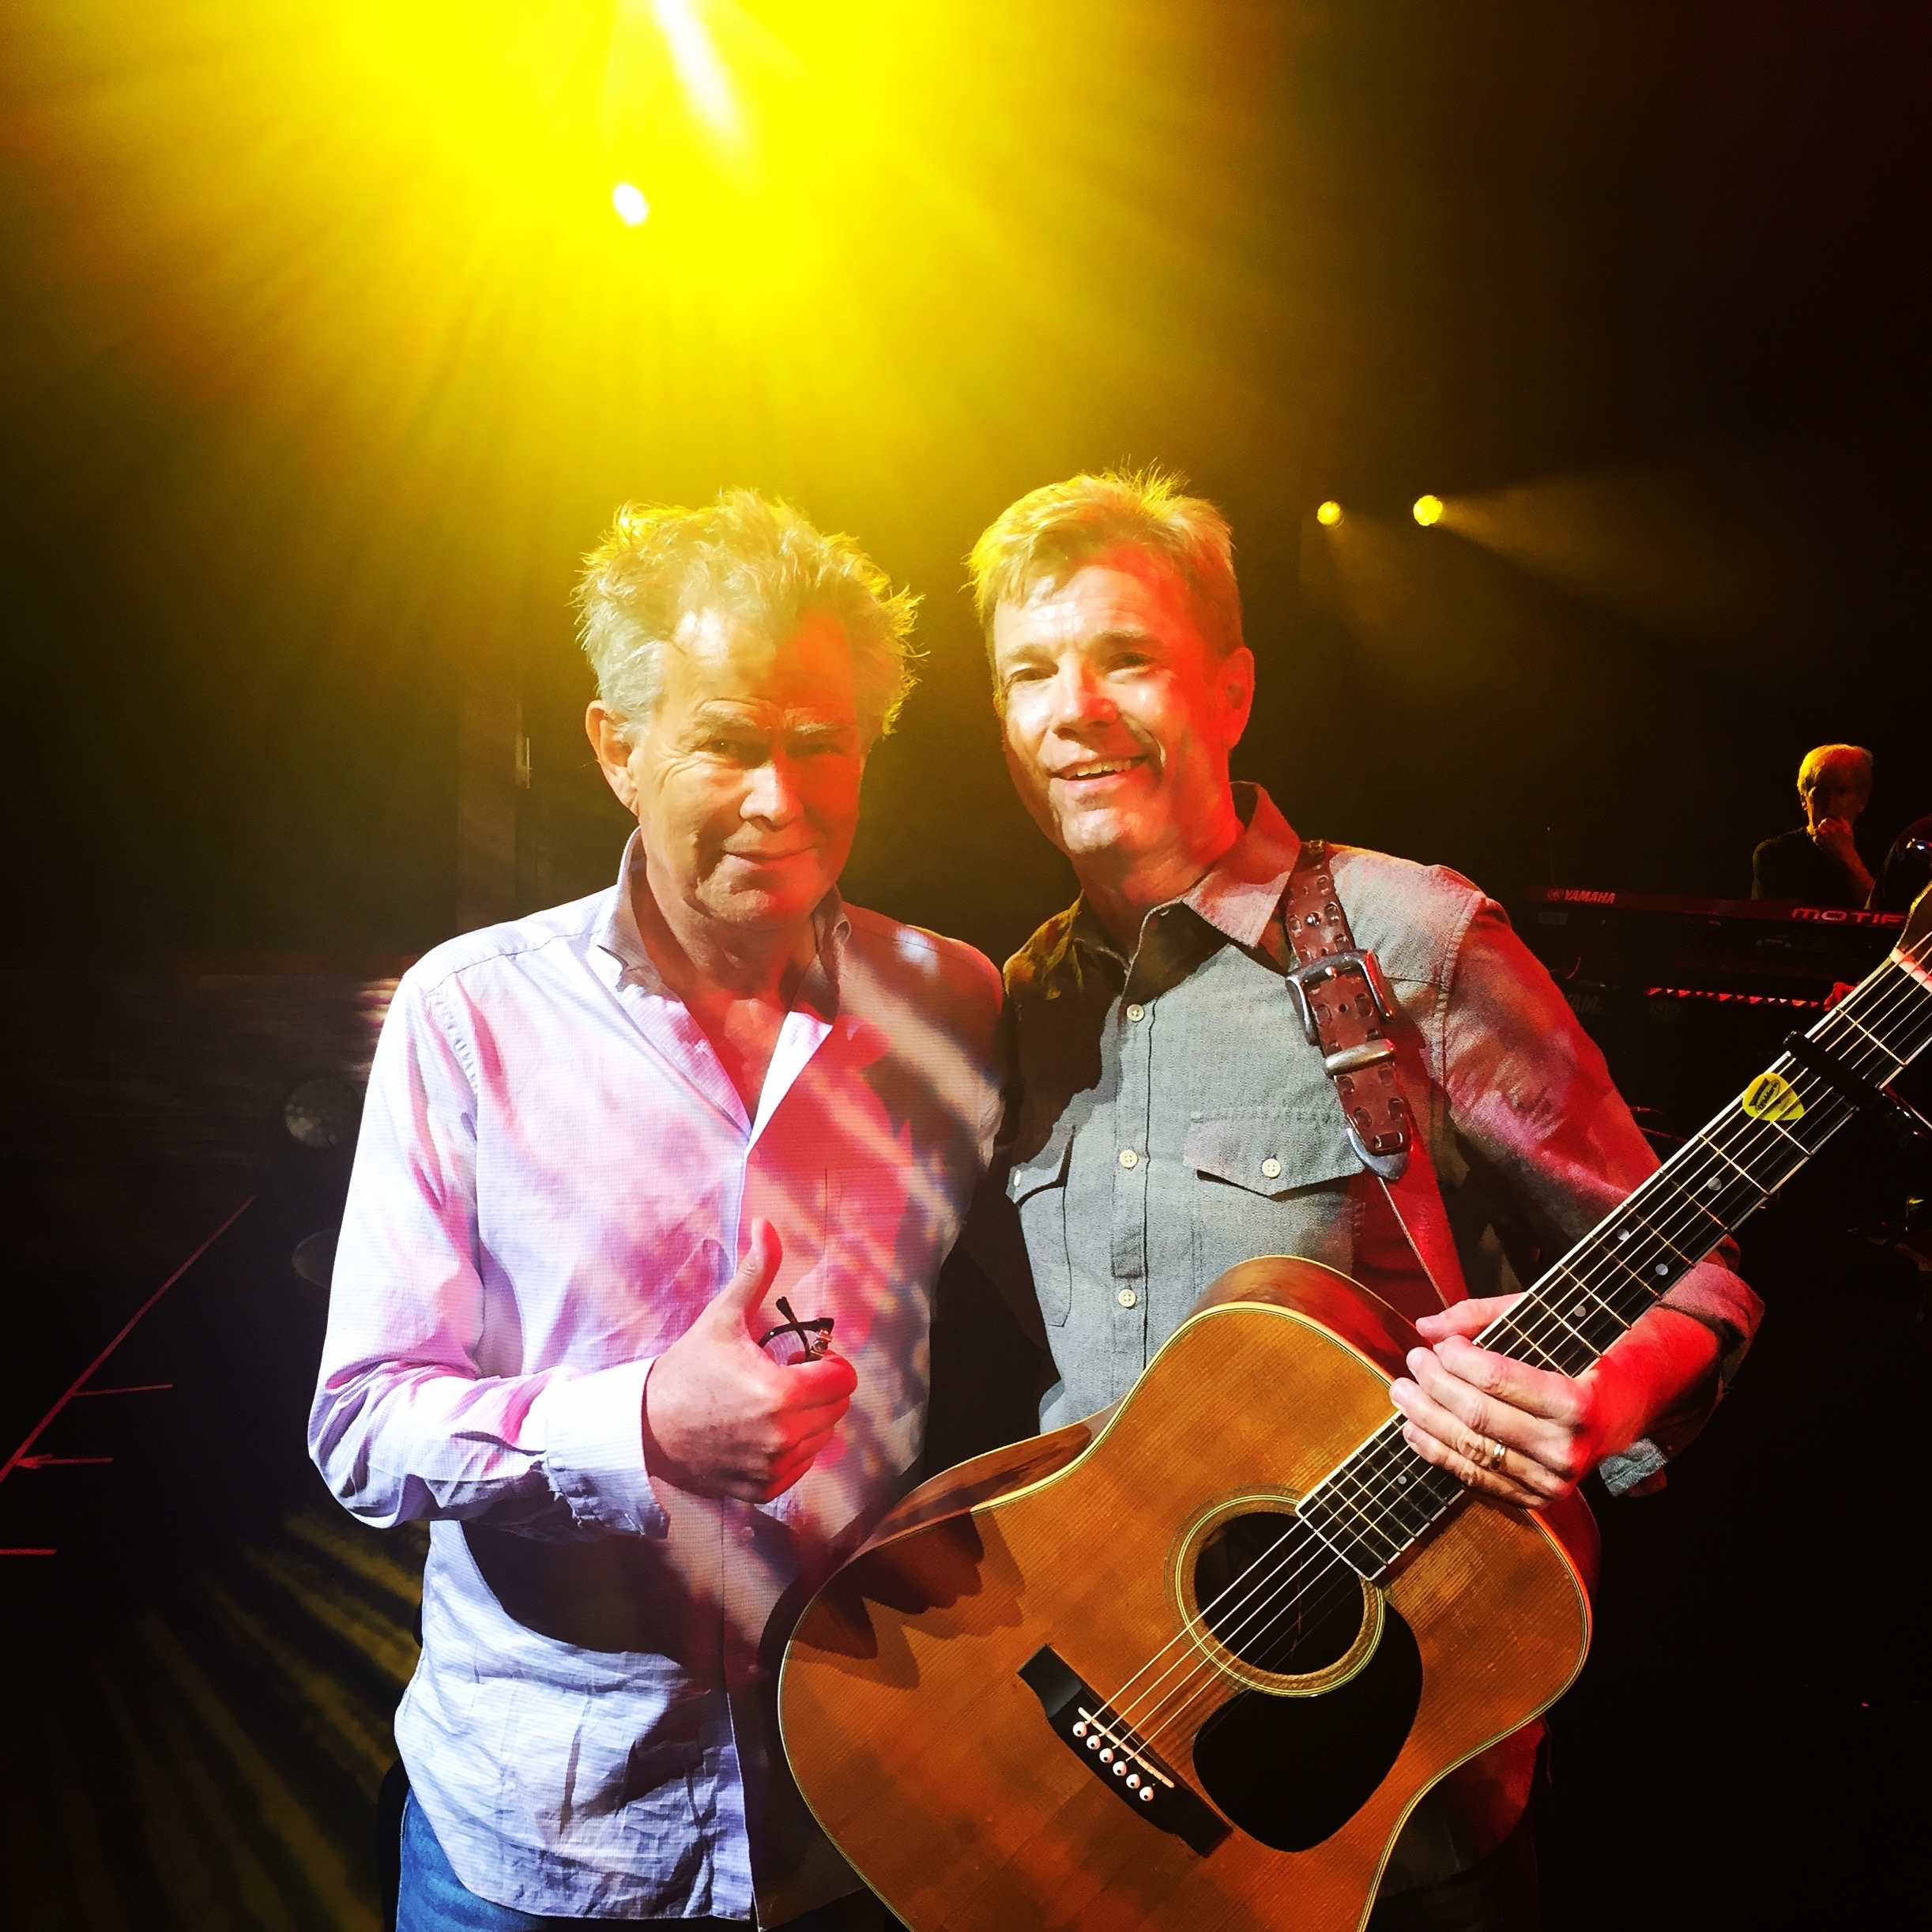 David Foster and Lionel